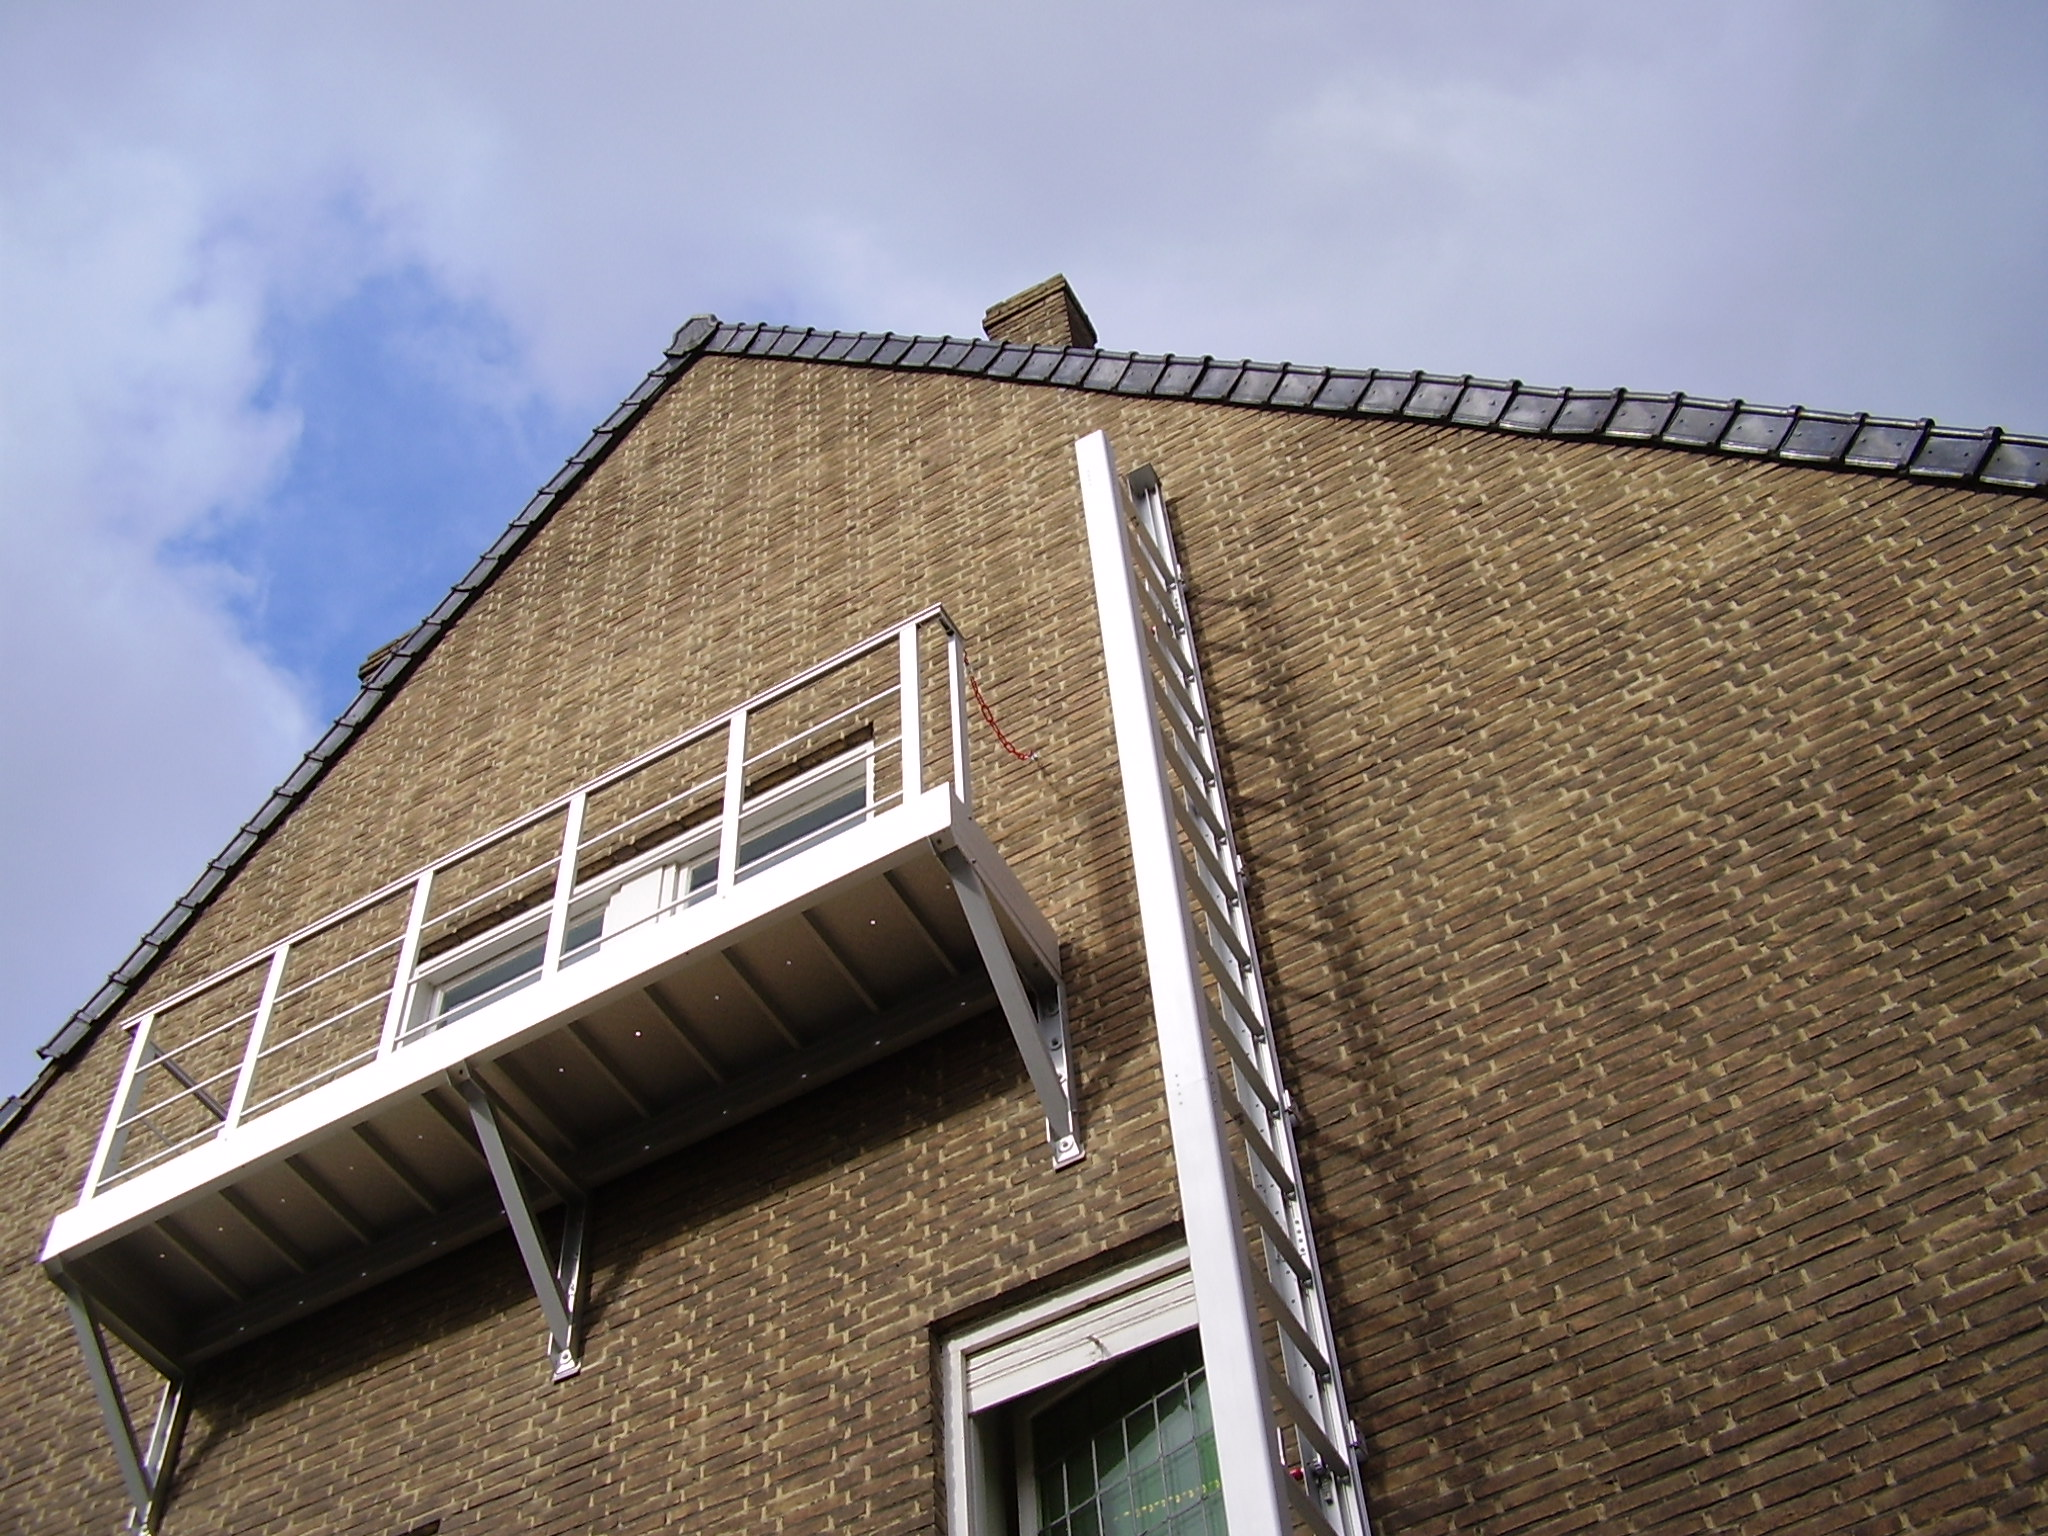 Aluminum access balcony to a retractable ladder